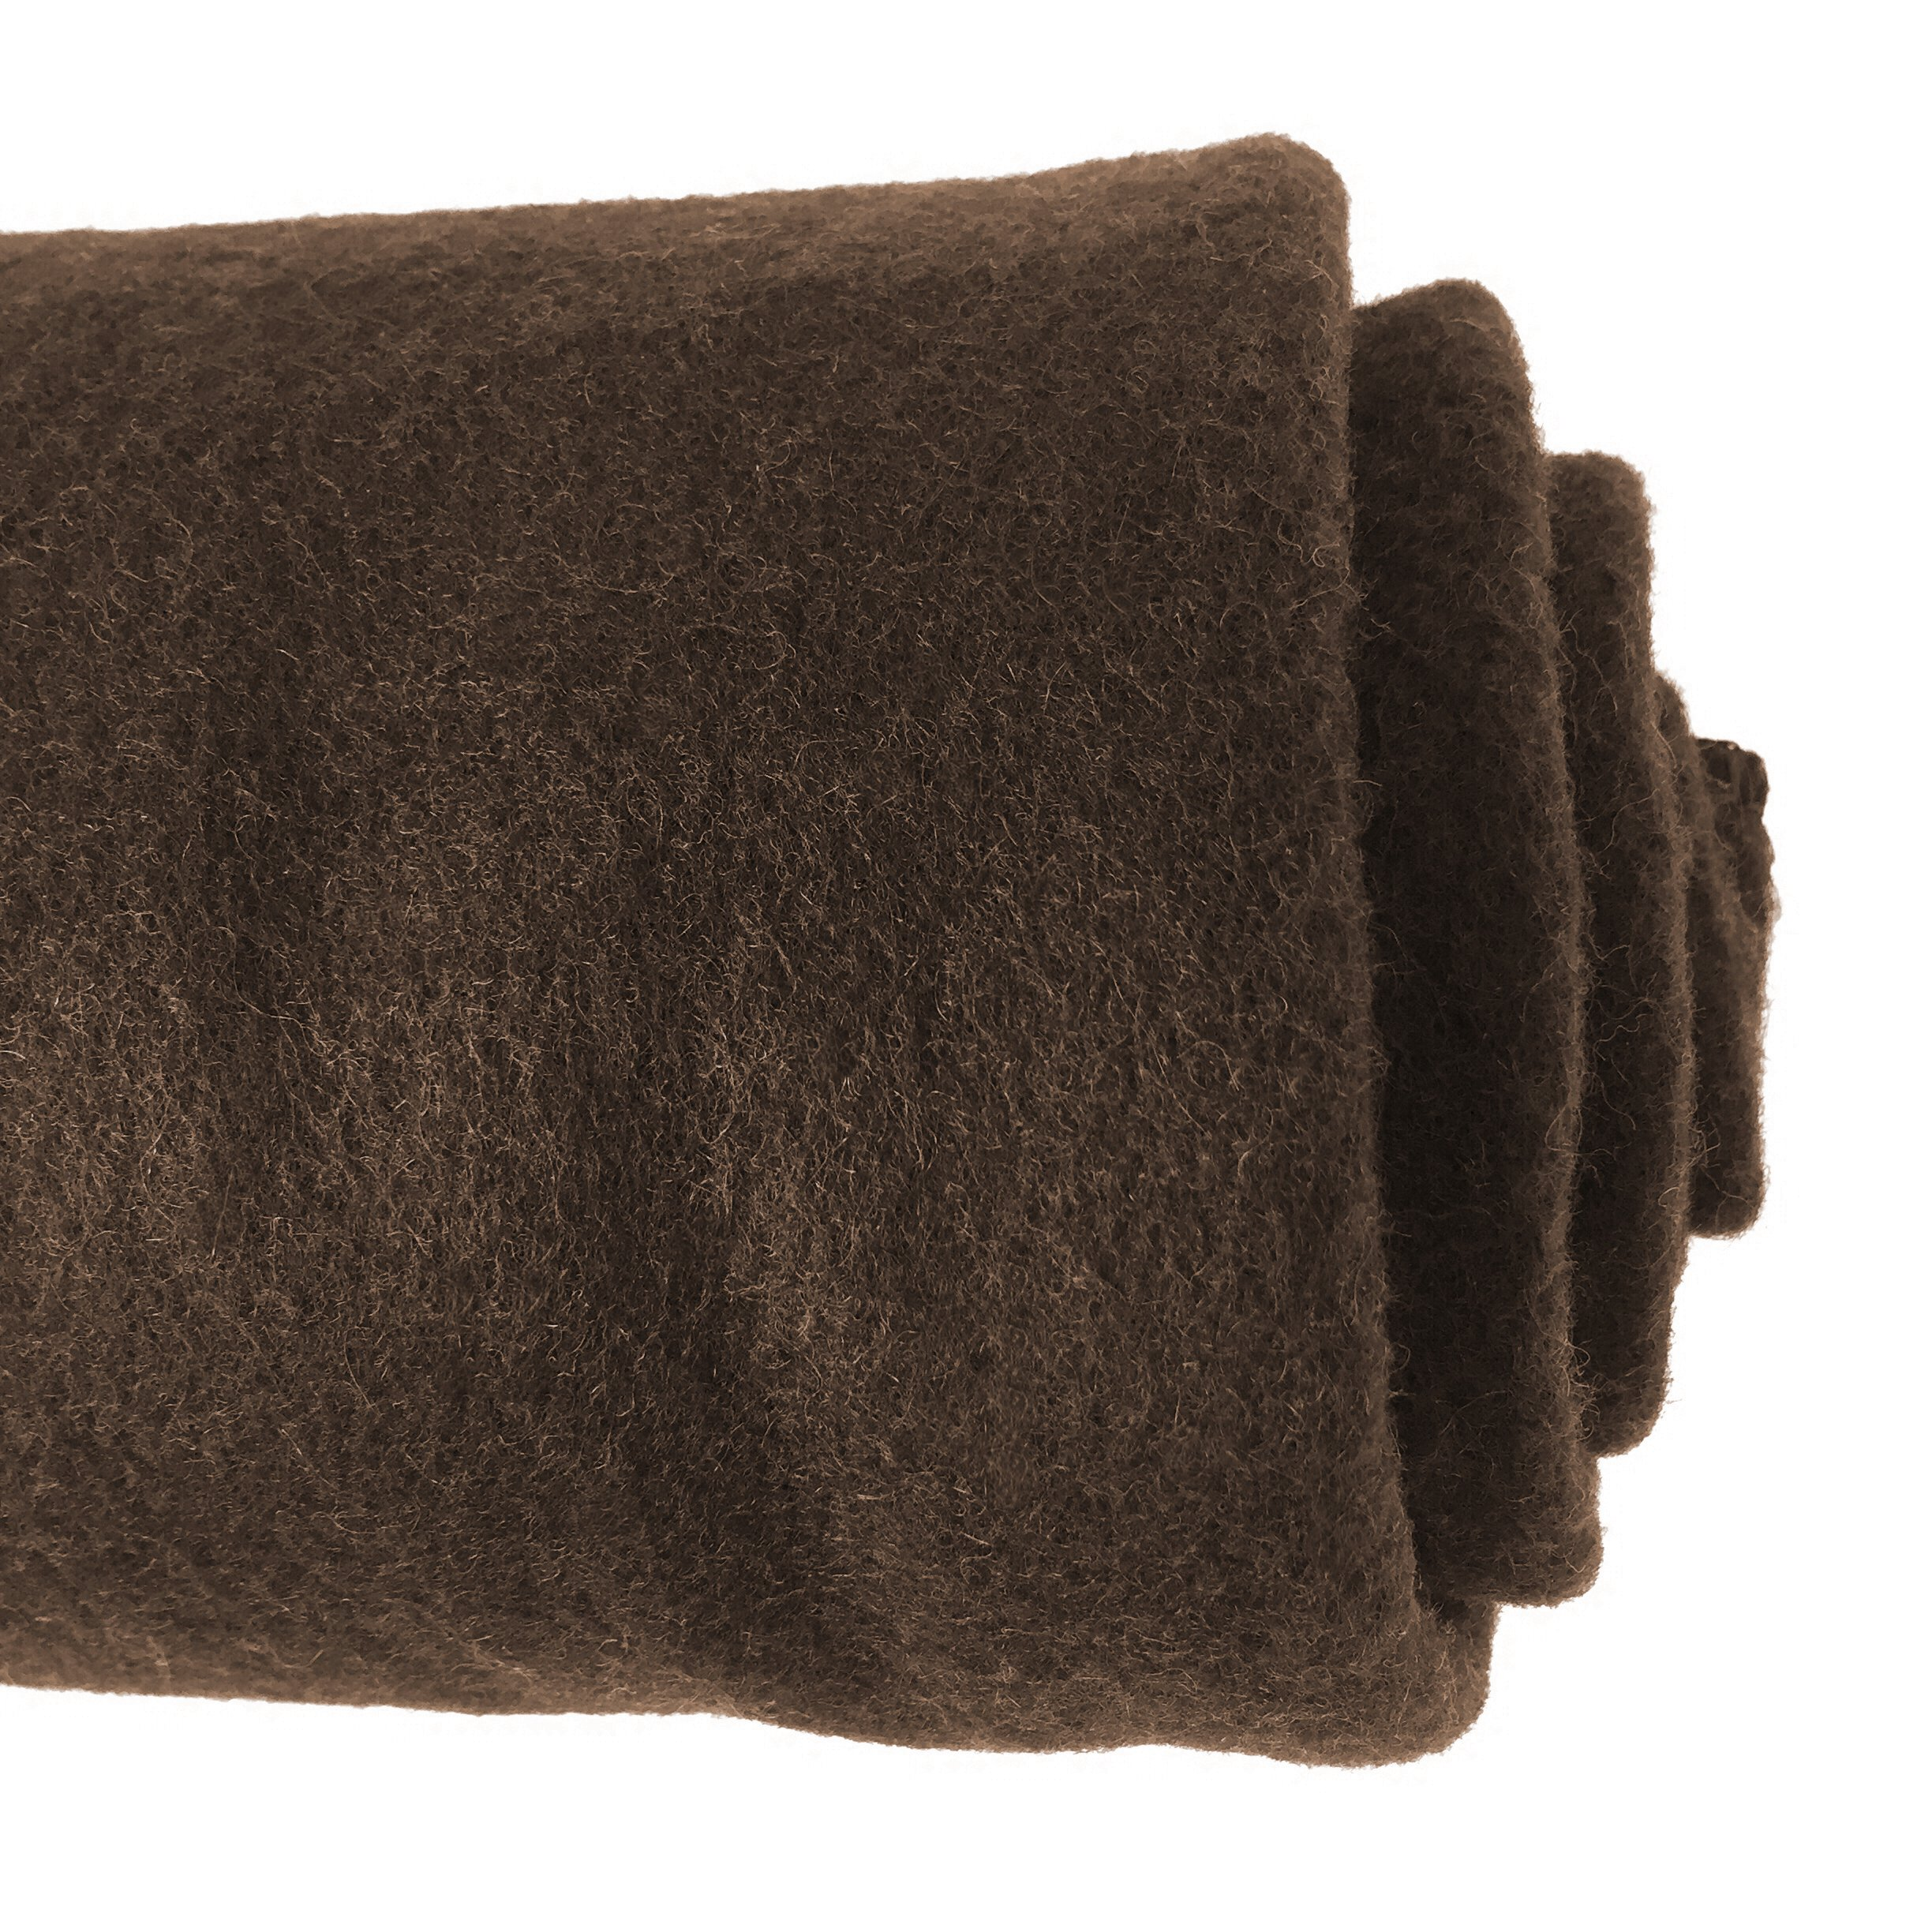 EKTOS 80% Wool Blanket, Brown, Light & Warm 3.7 lbs, Large Washable 66''x90'' Size, Perfect for Outdoor Camping, Survival & Emergency Preparedness Use by EKTOS (Image #7)